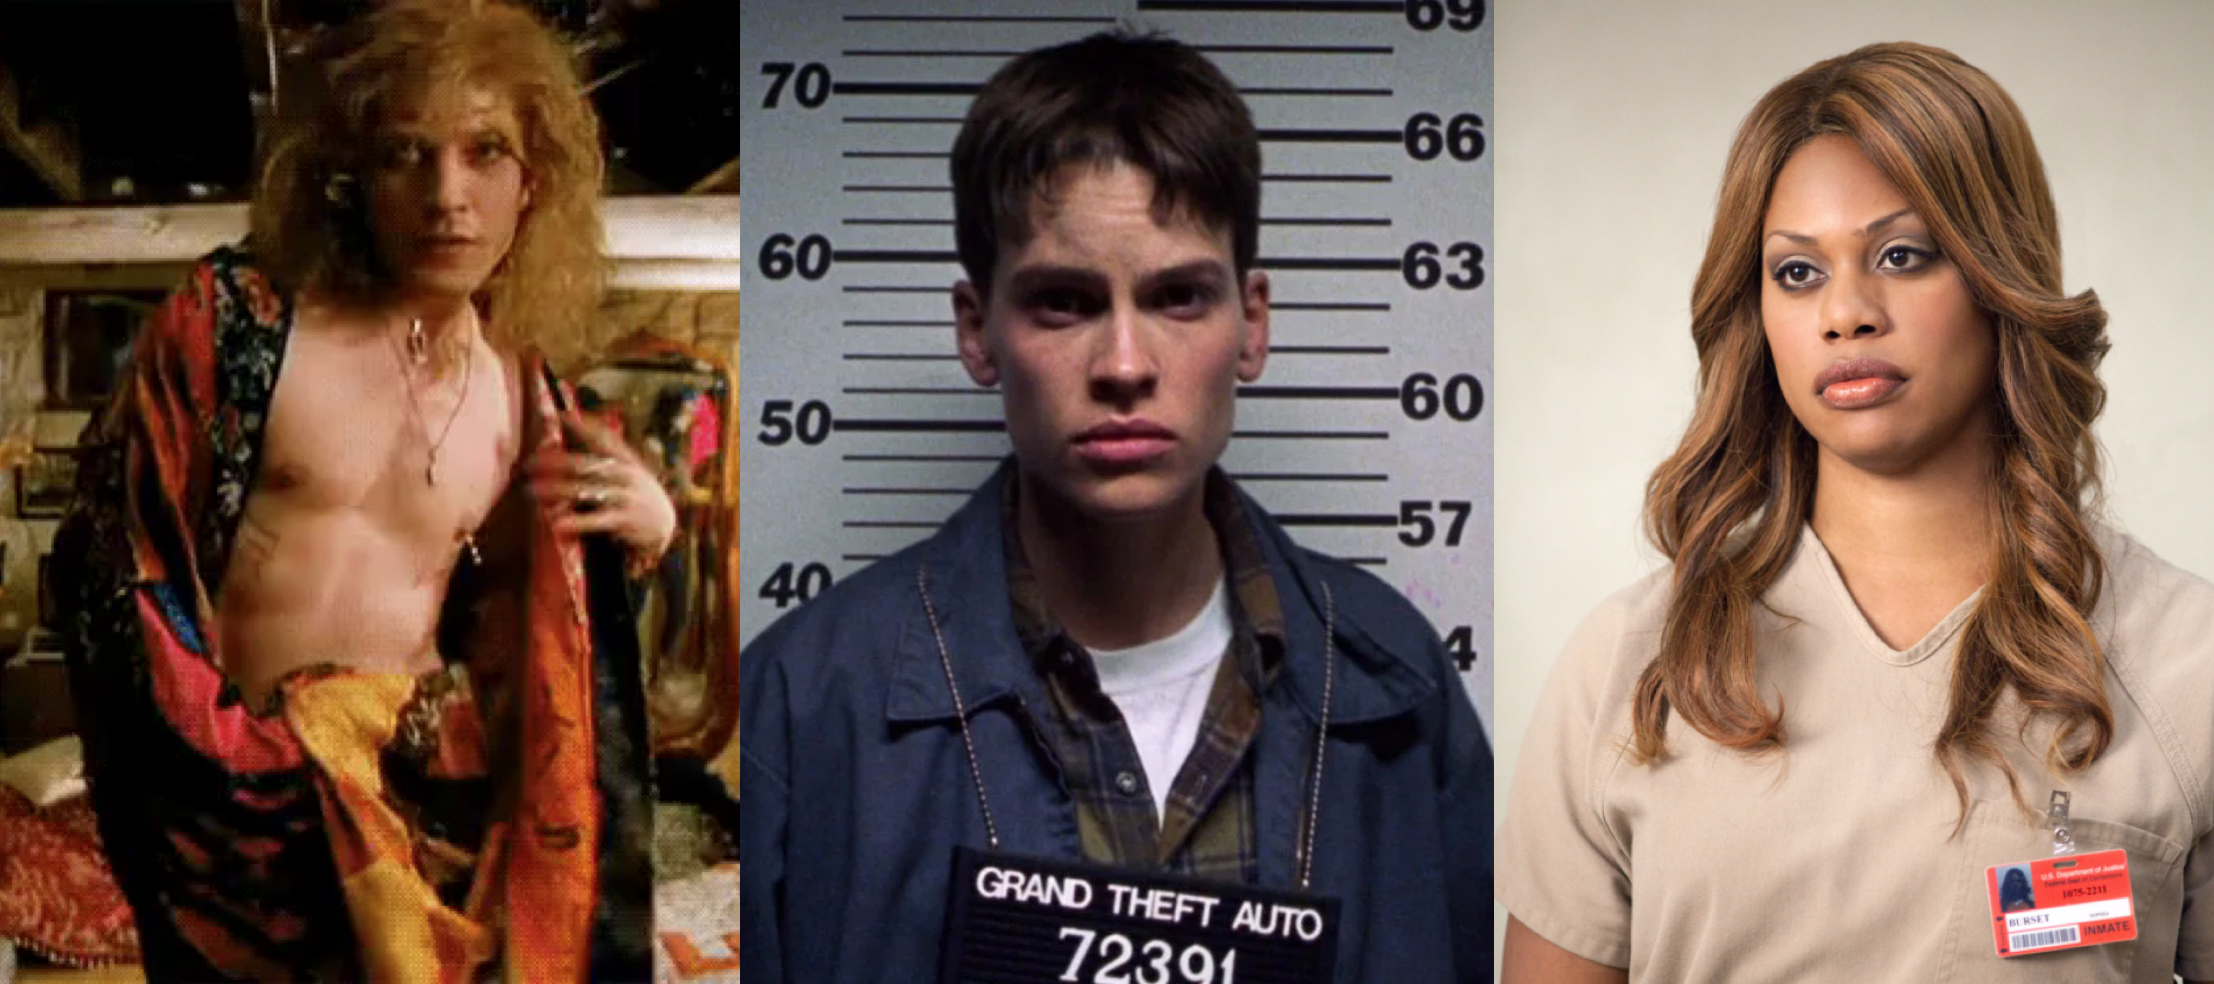 Mainstream media trans characters over the last few decades: